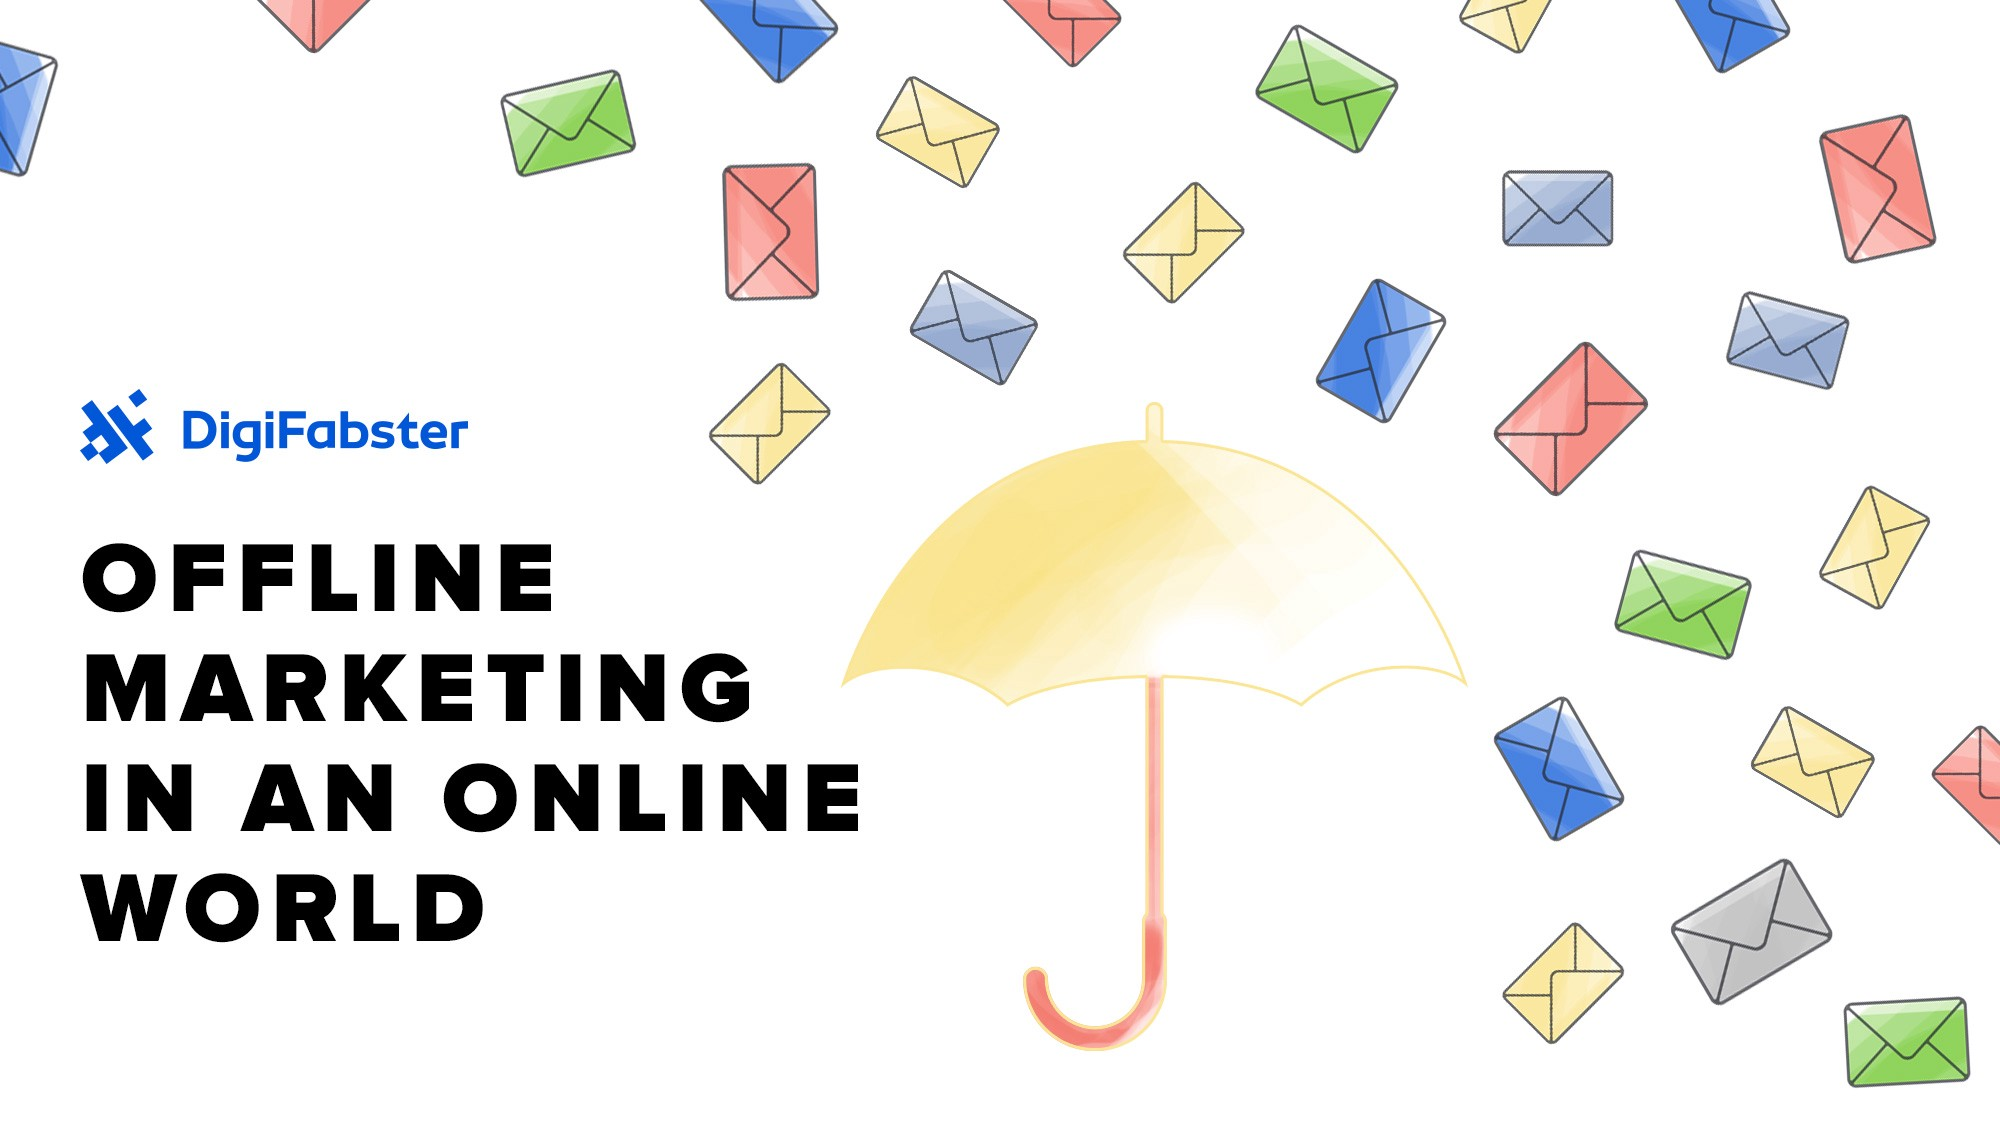 Offline Marketing in an Online World - Digifabster